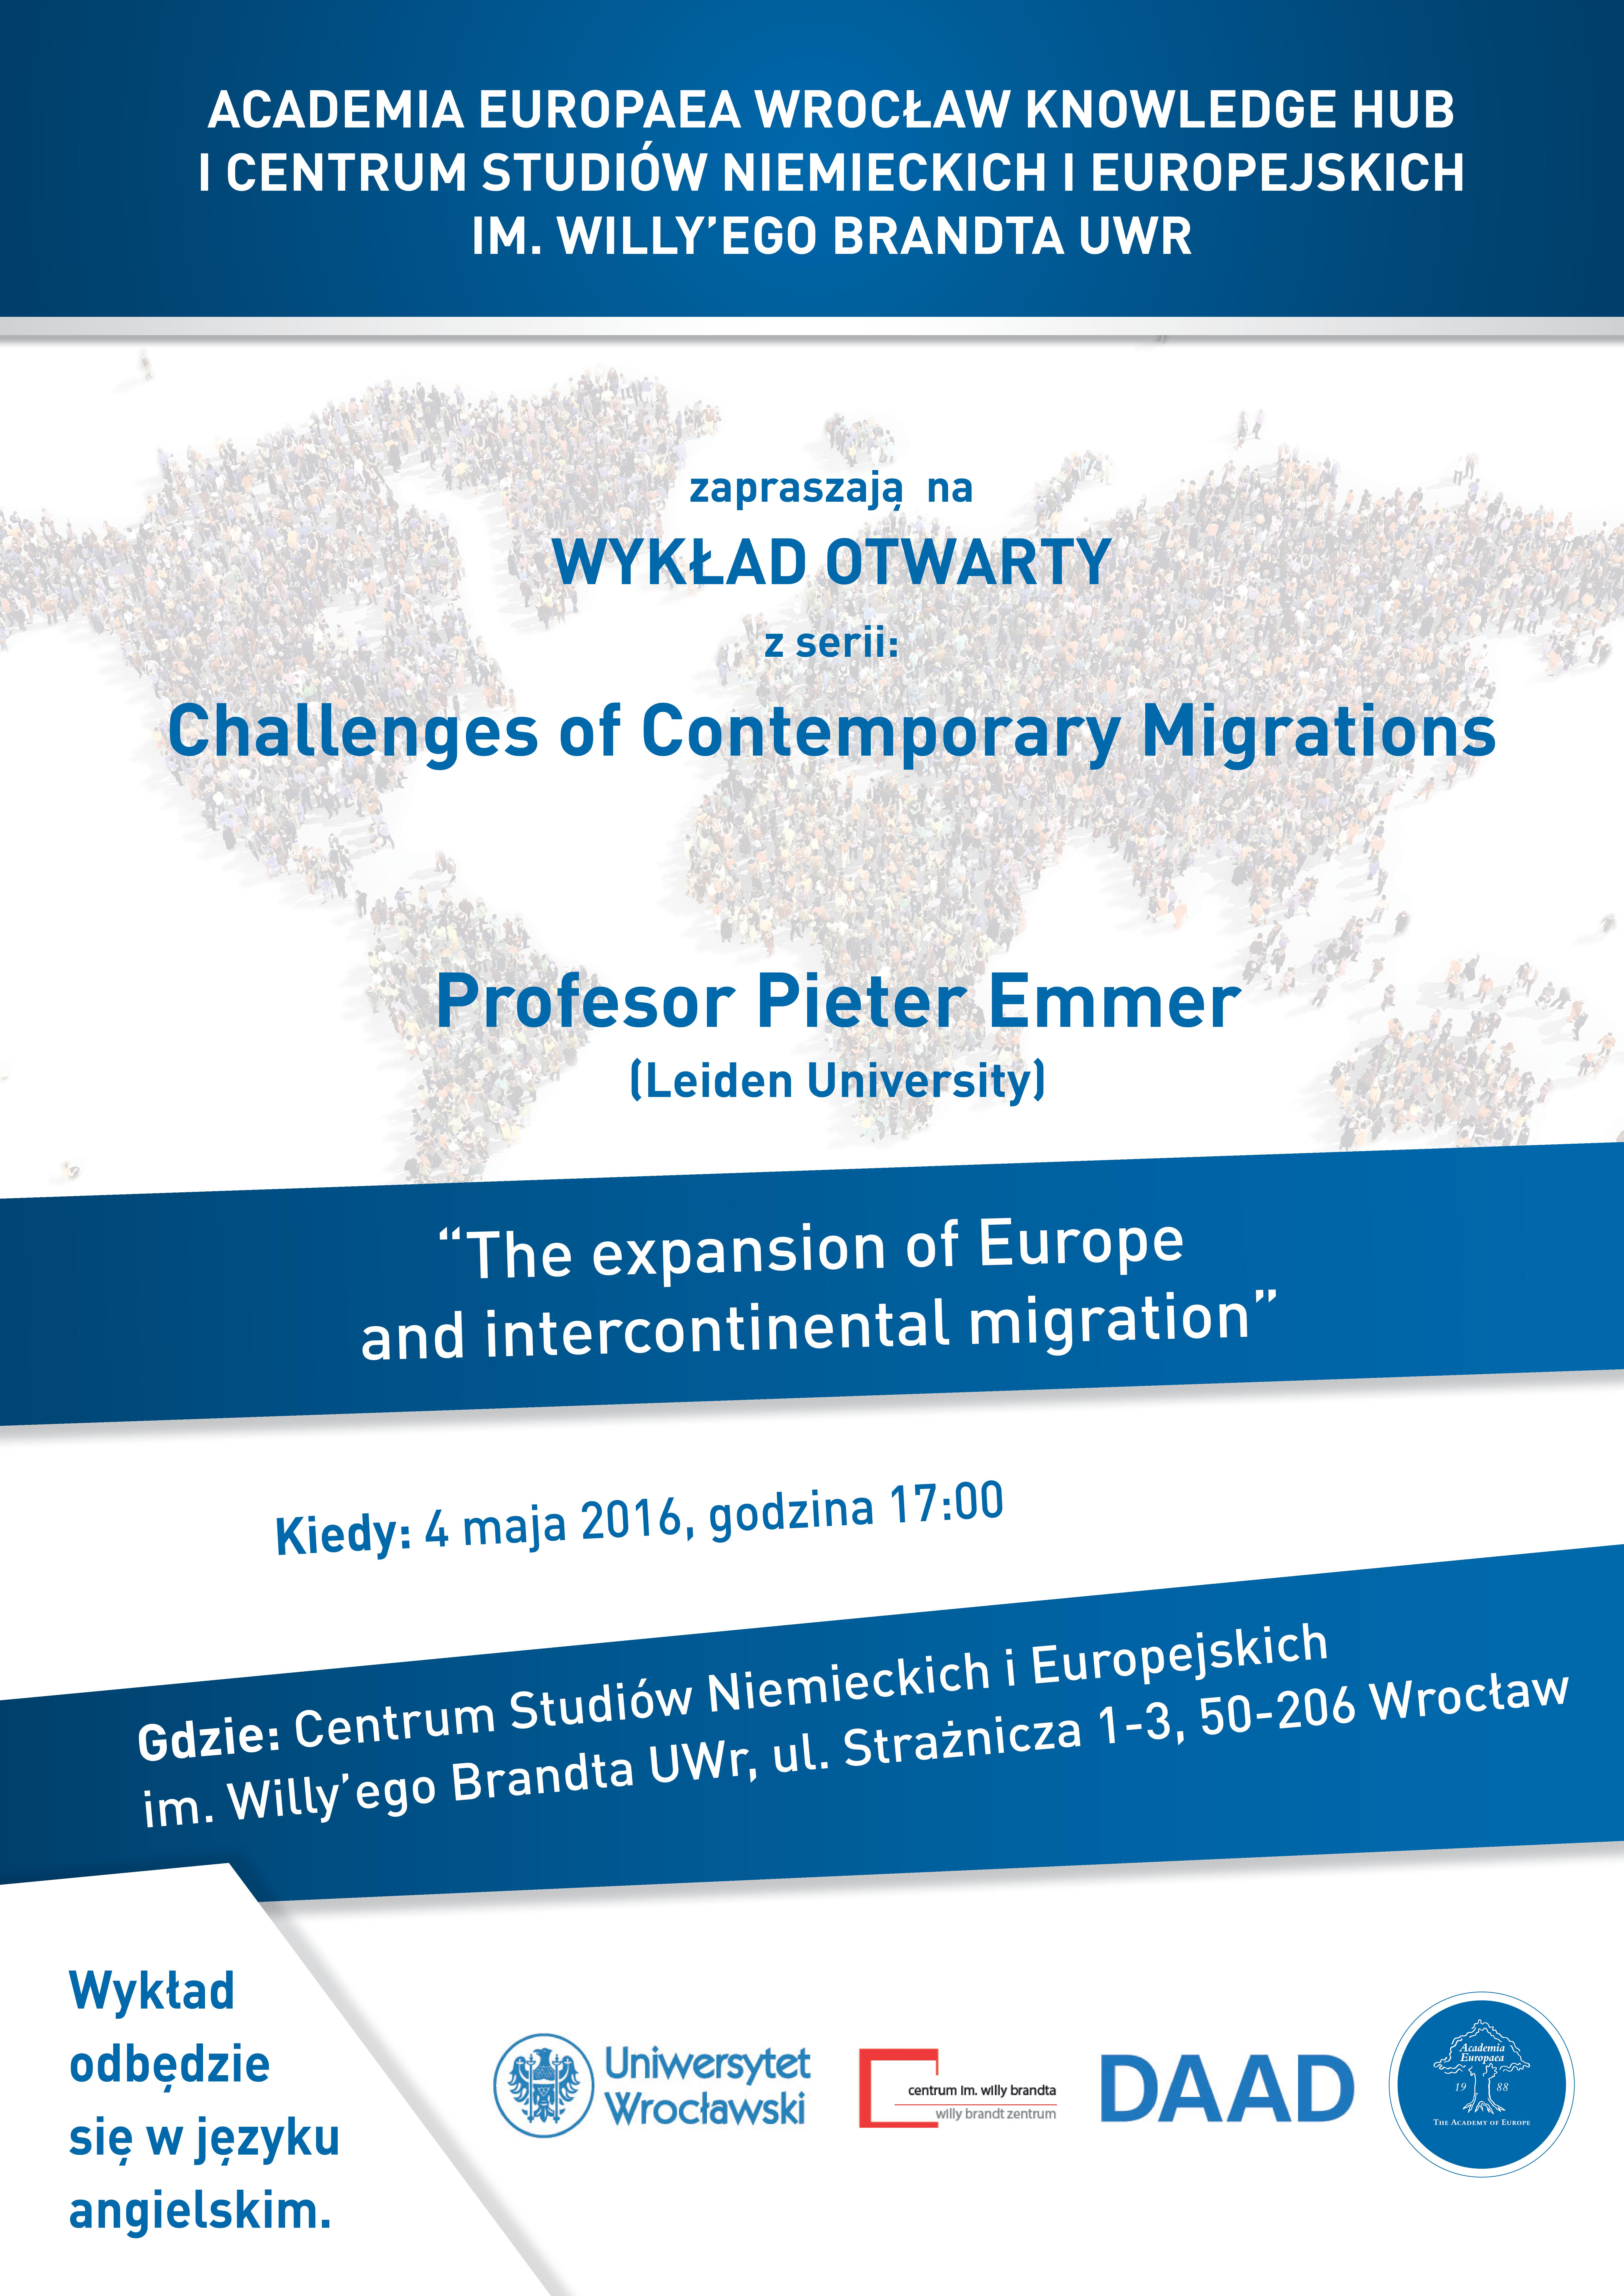 The expansion of Europe and intercontinental migration